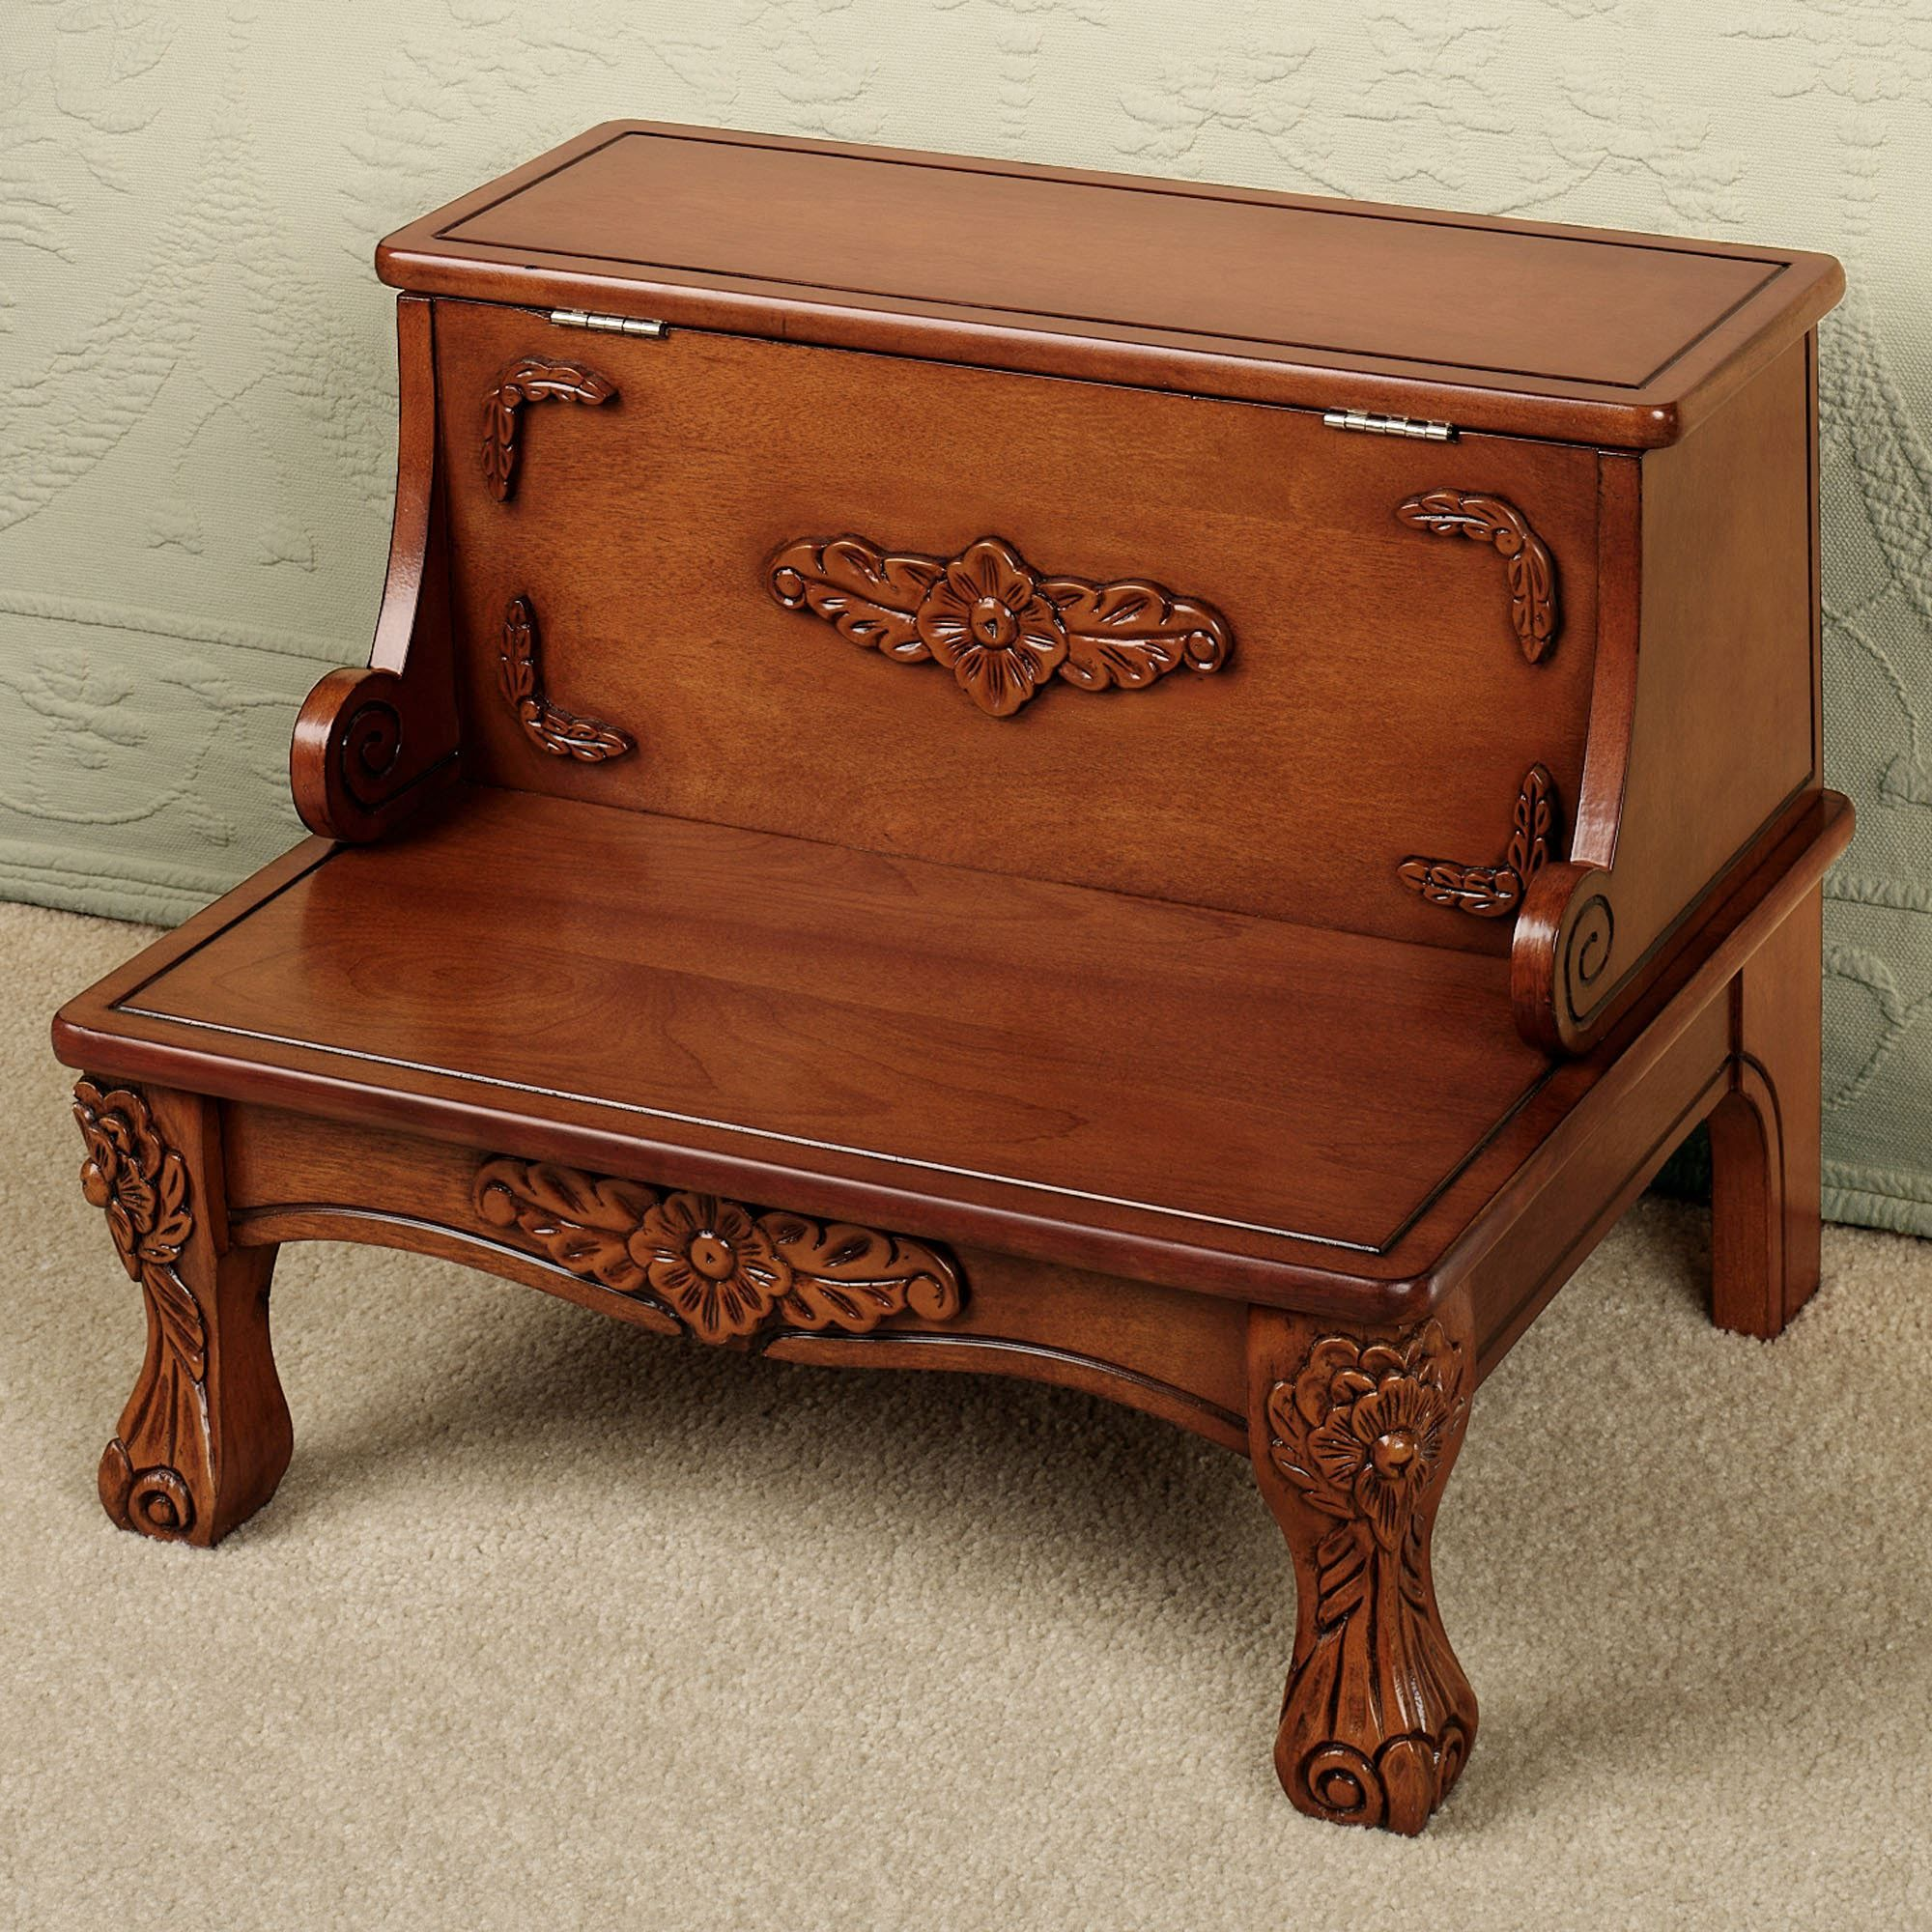 Victoriana Wooden Bed Steps With Storage Bed Steps Wooden Bed Bed Stool Bed step stools for high beds